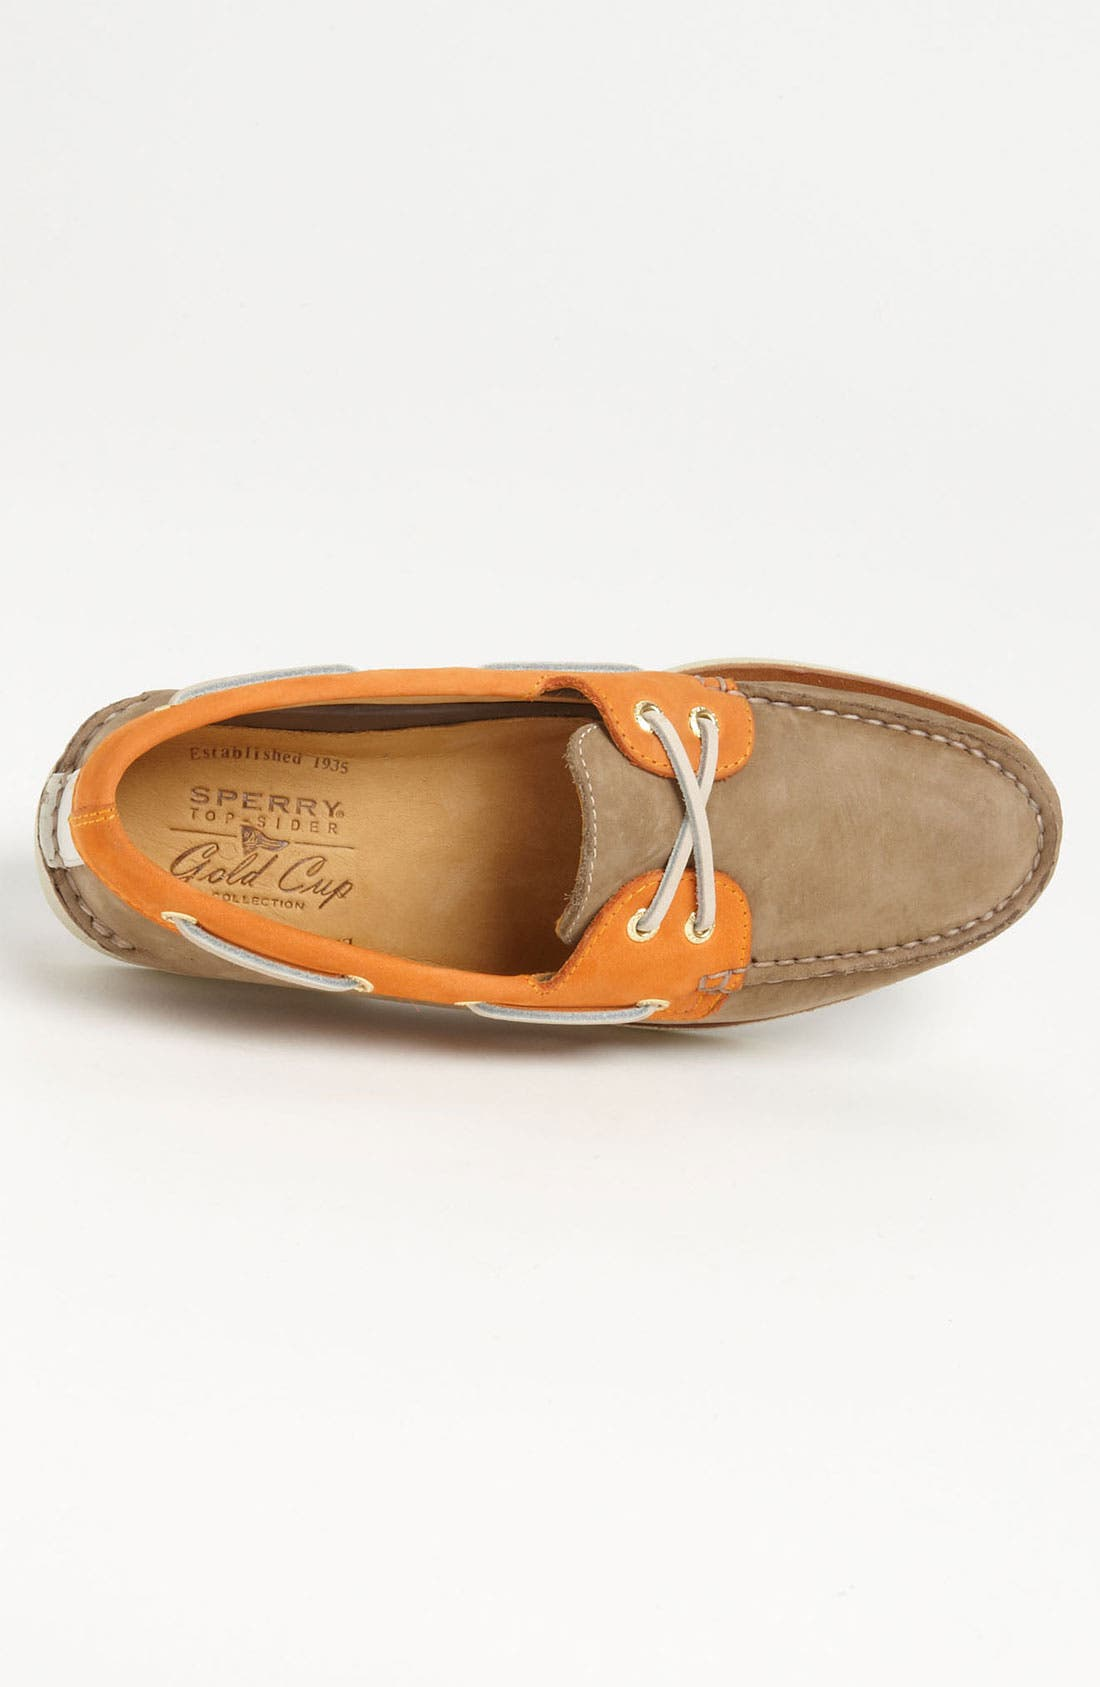 Alternate Image 3  - Sperry Top-Sider® 'Authentic Original - Gold Cup' Boat Shoe